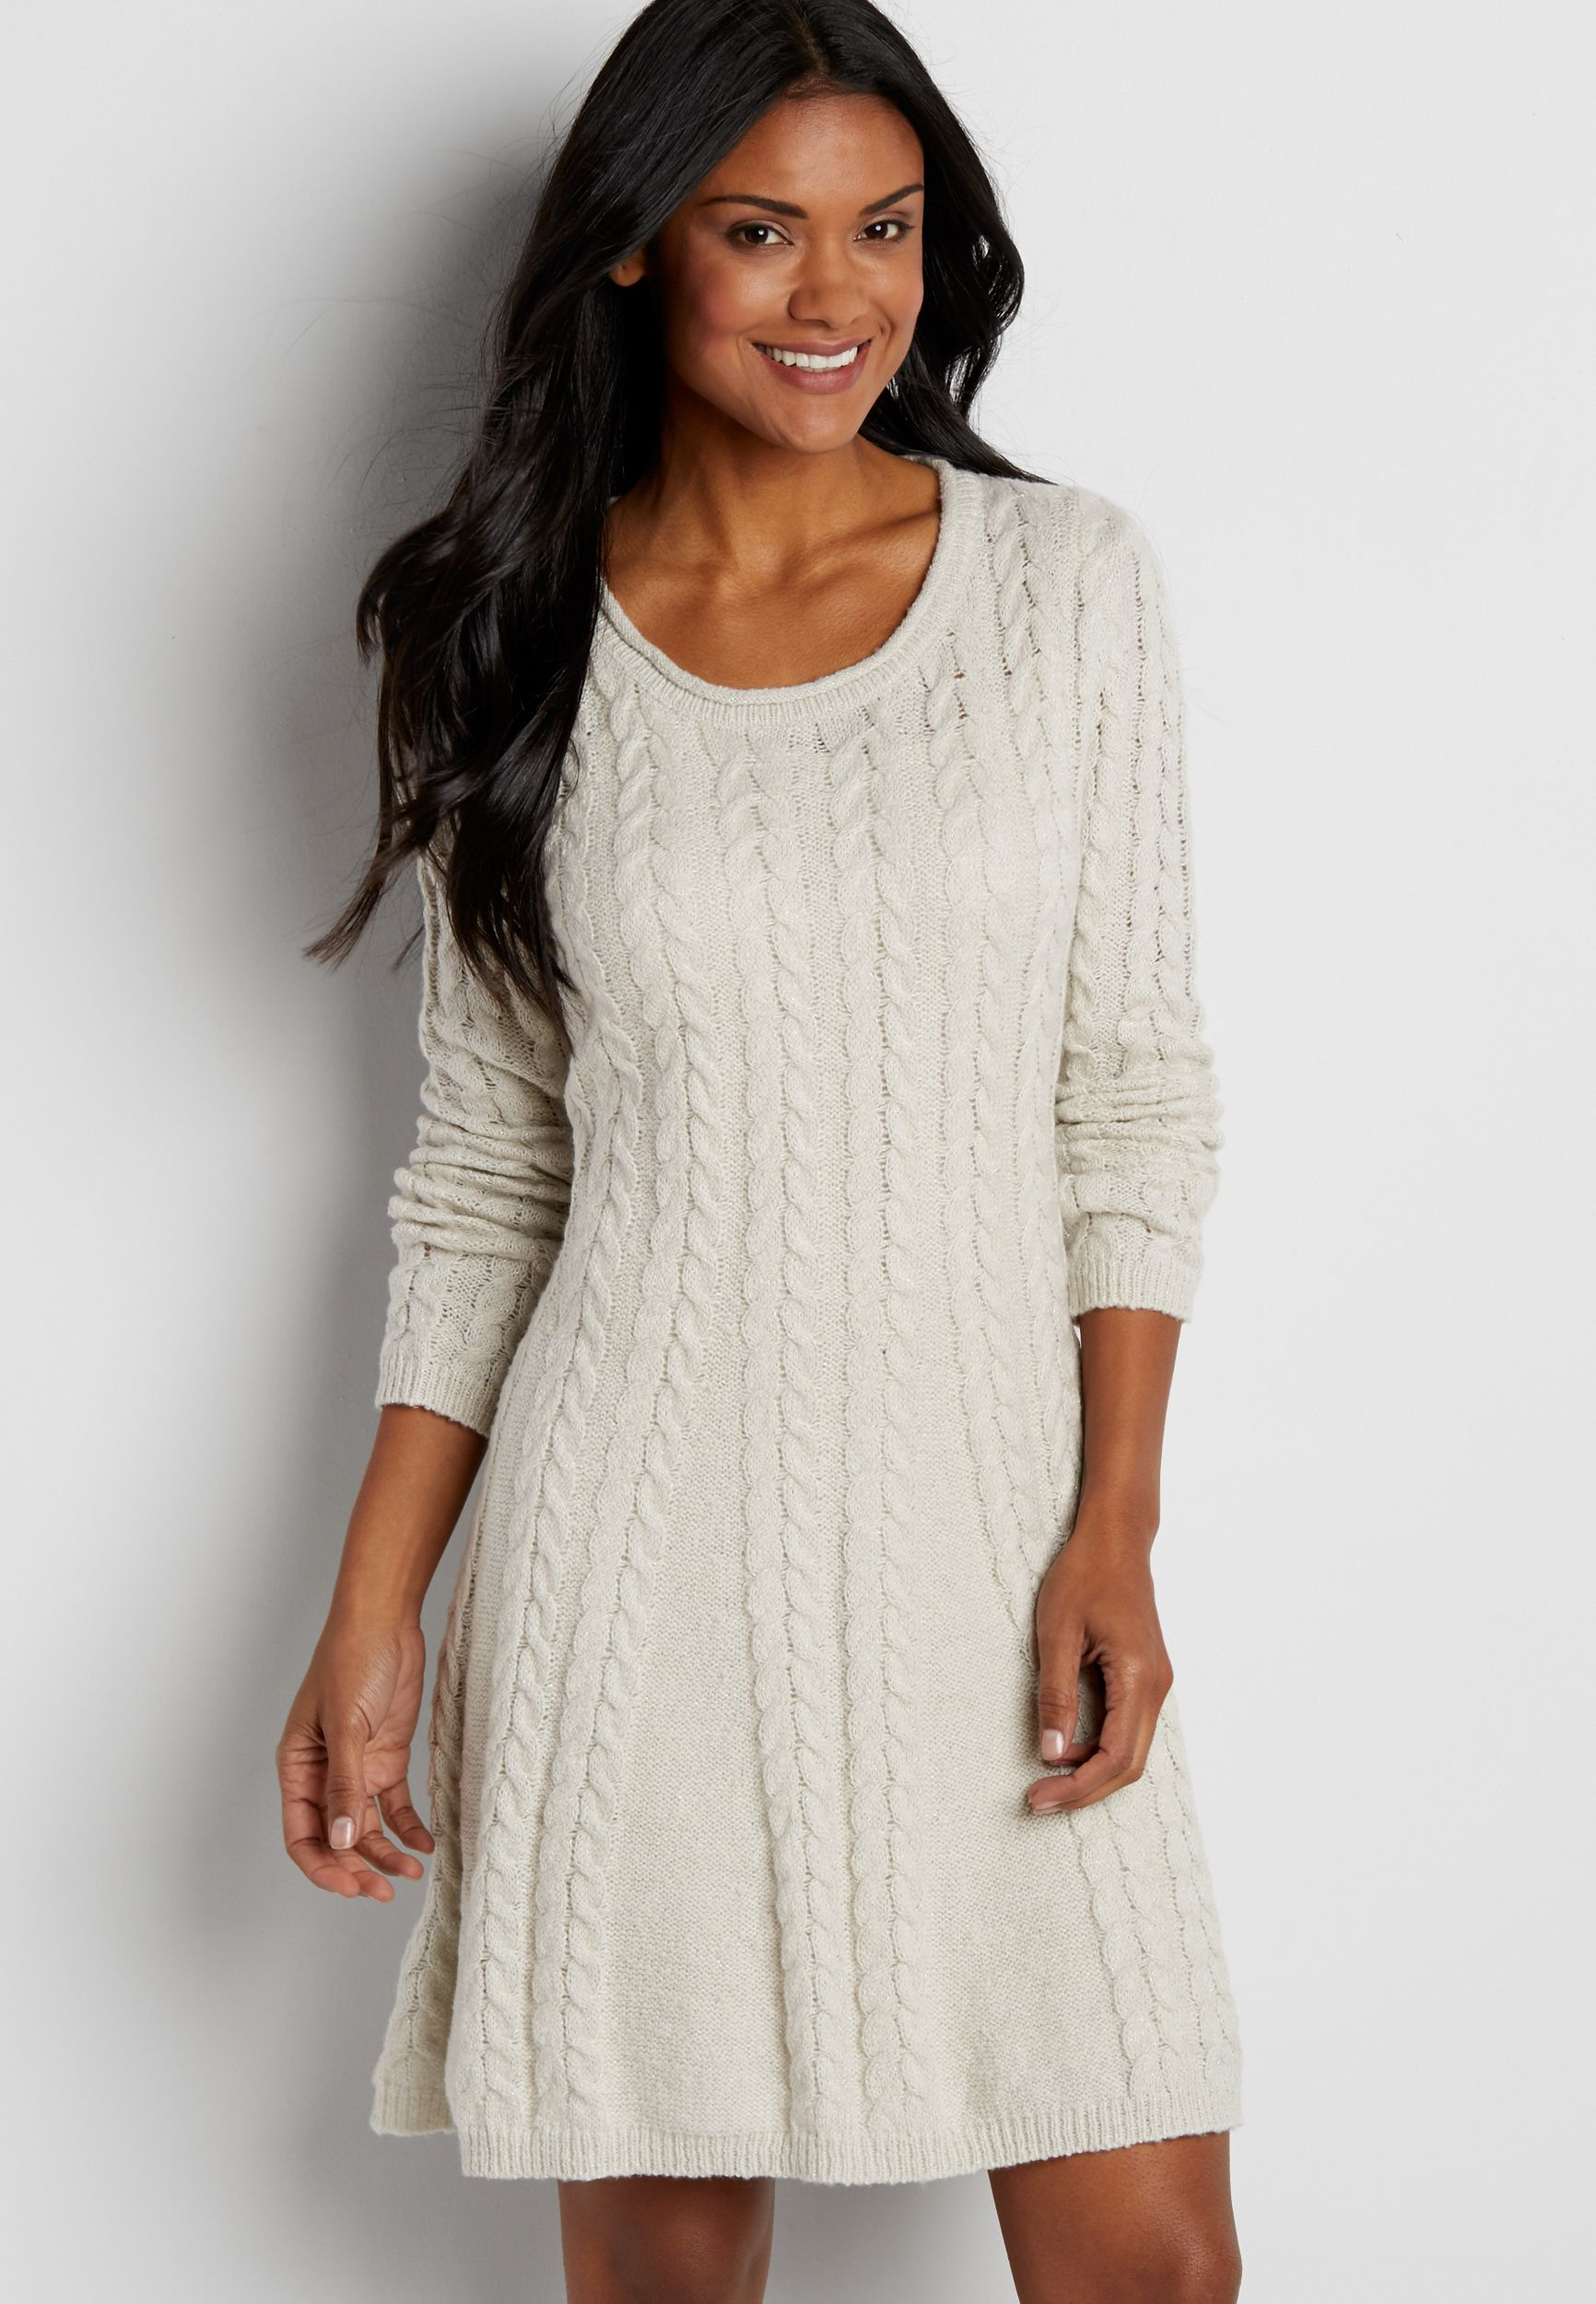 27++ Cable knitted dress info